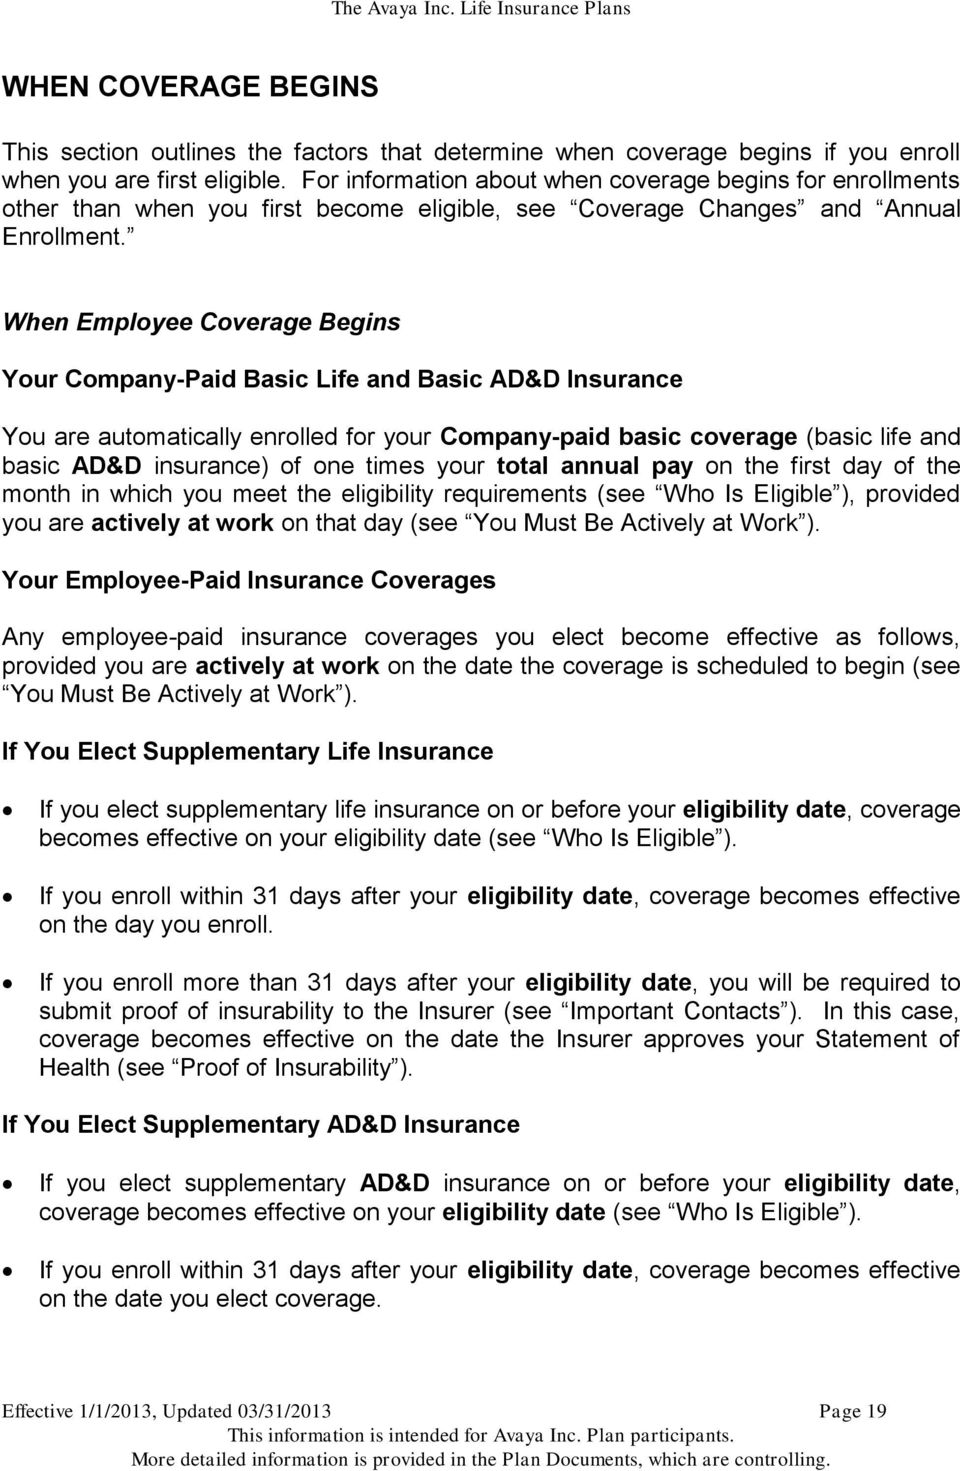 When Employee Coverage Begins Your Company-Paid Basic Life and Basic AD&D Insurance You are automatically enrolled for your Company-paid basic coverage (basic life and basic AD&D insurance) of one